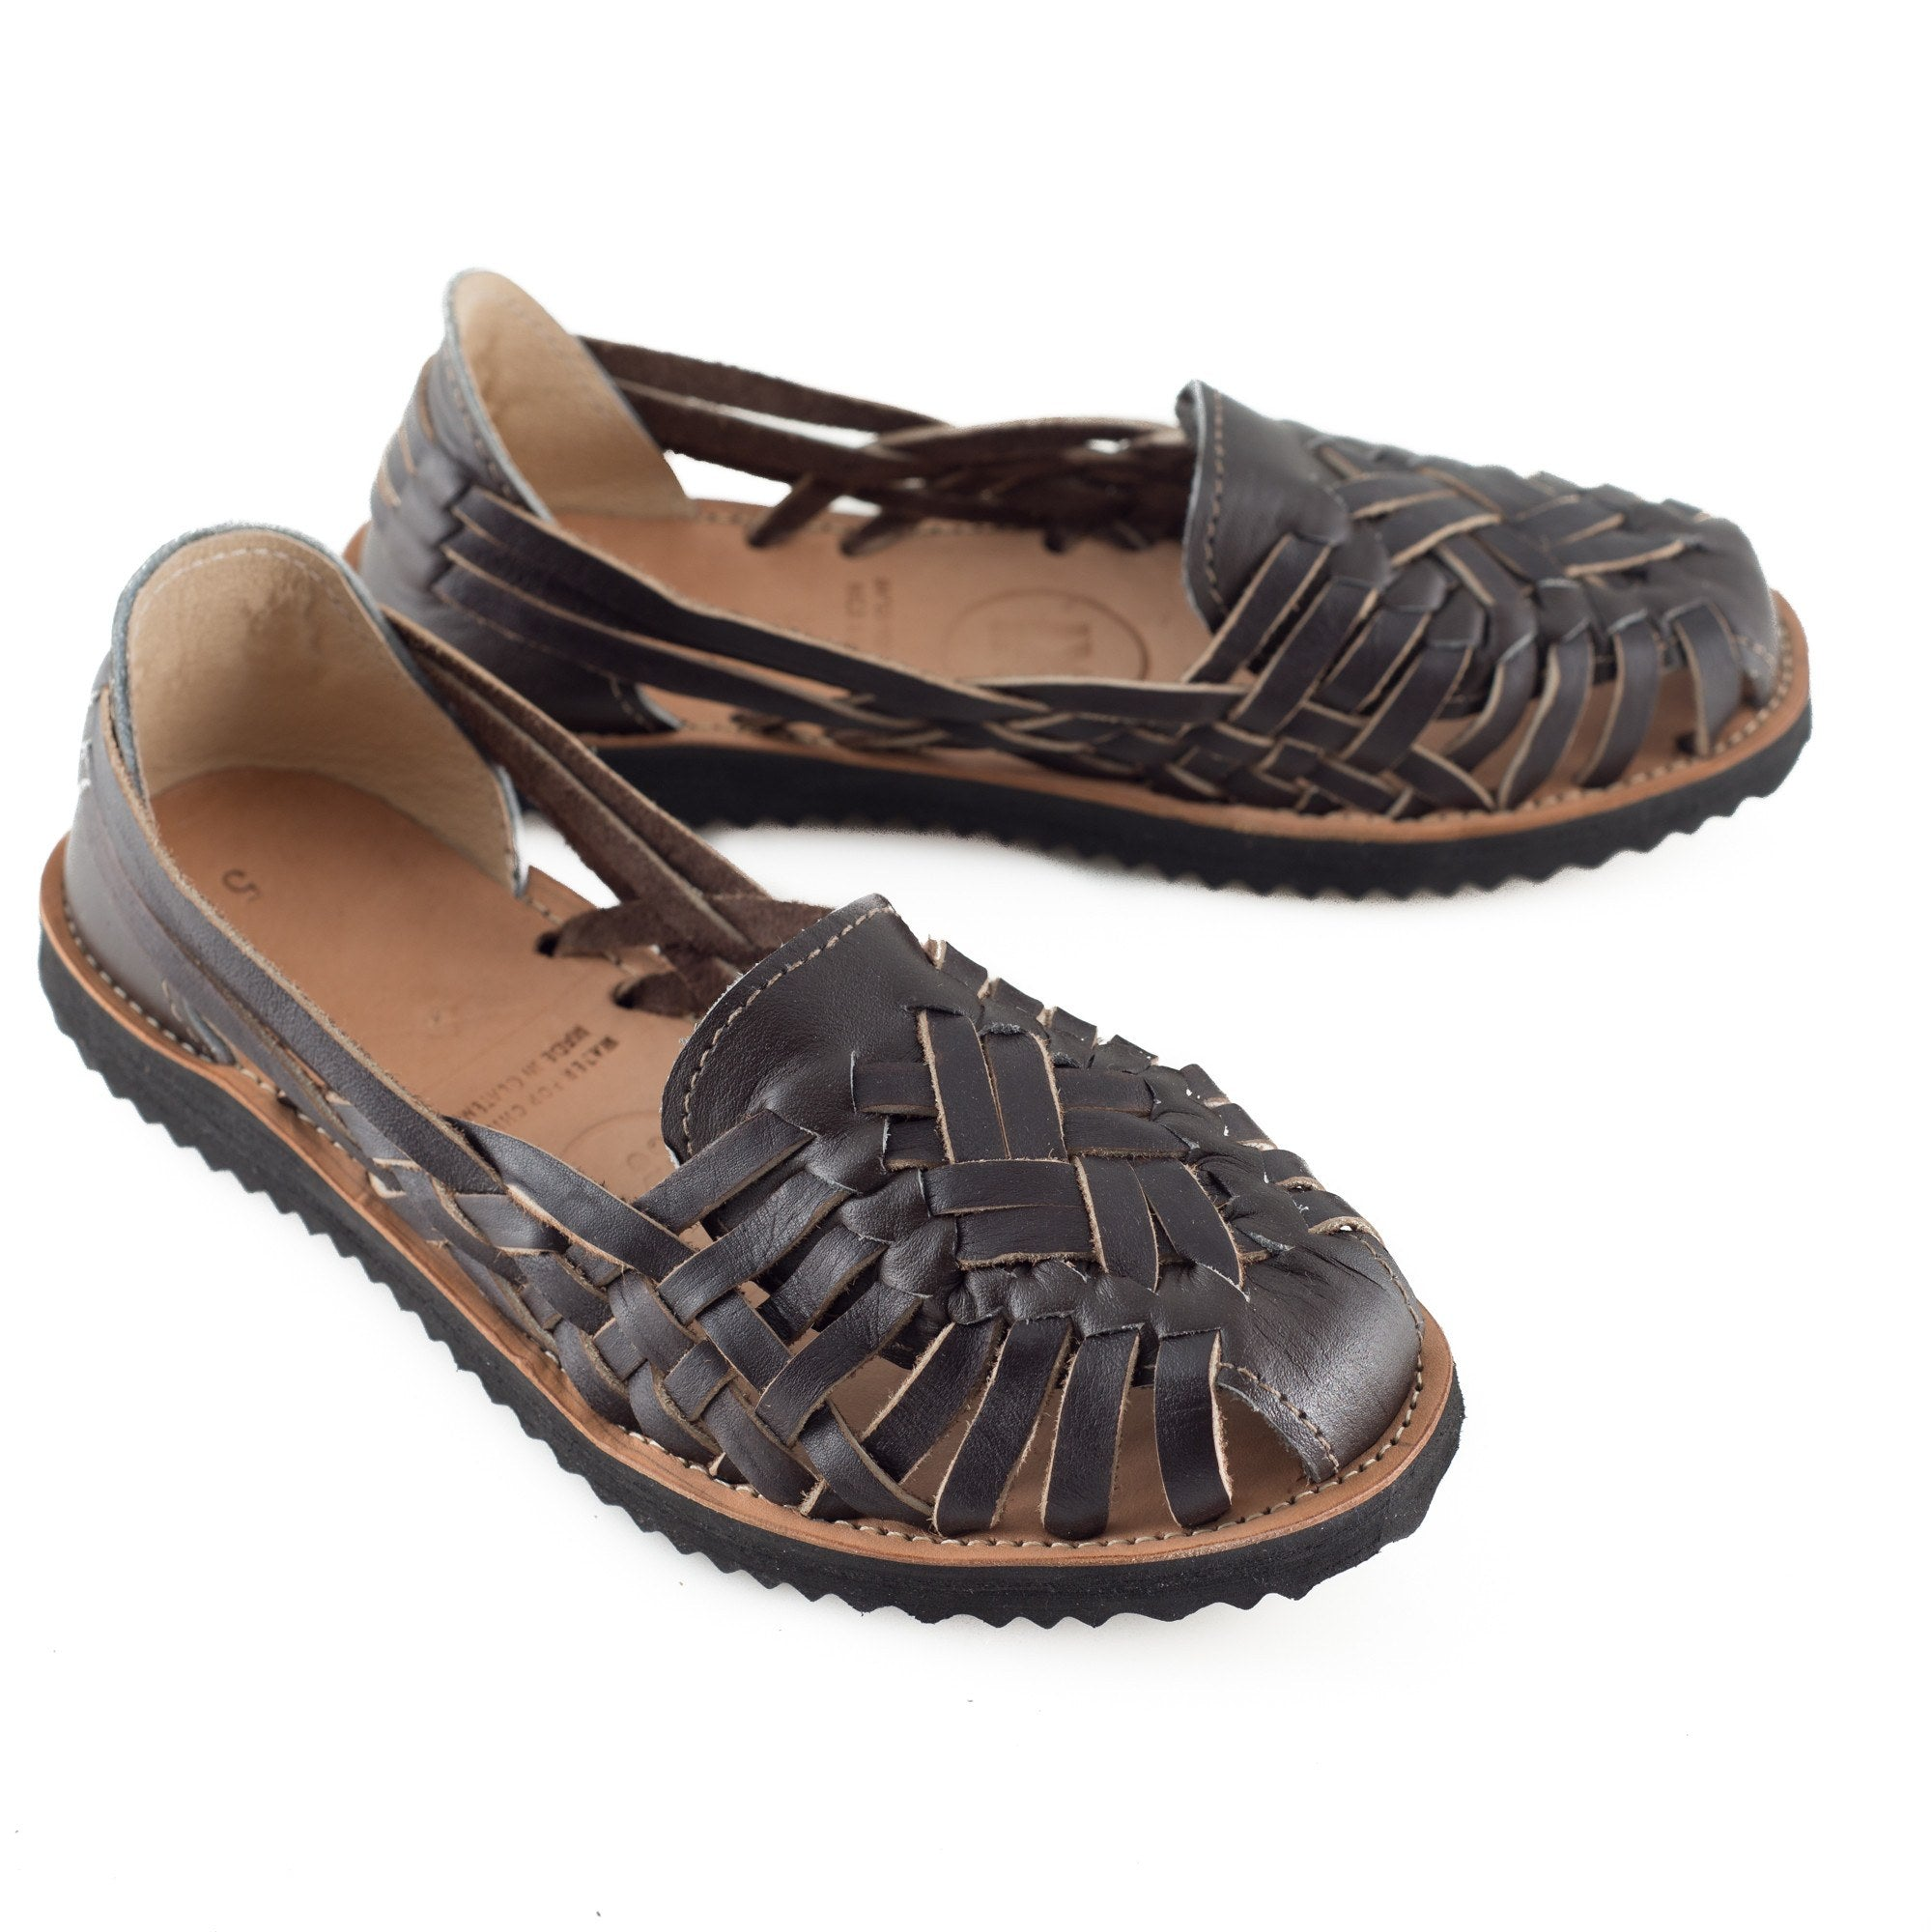 Women's Brown All Leather Huarache Sandal - Ix Style - Water For Children